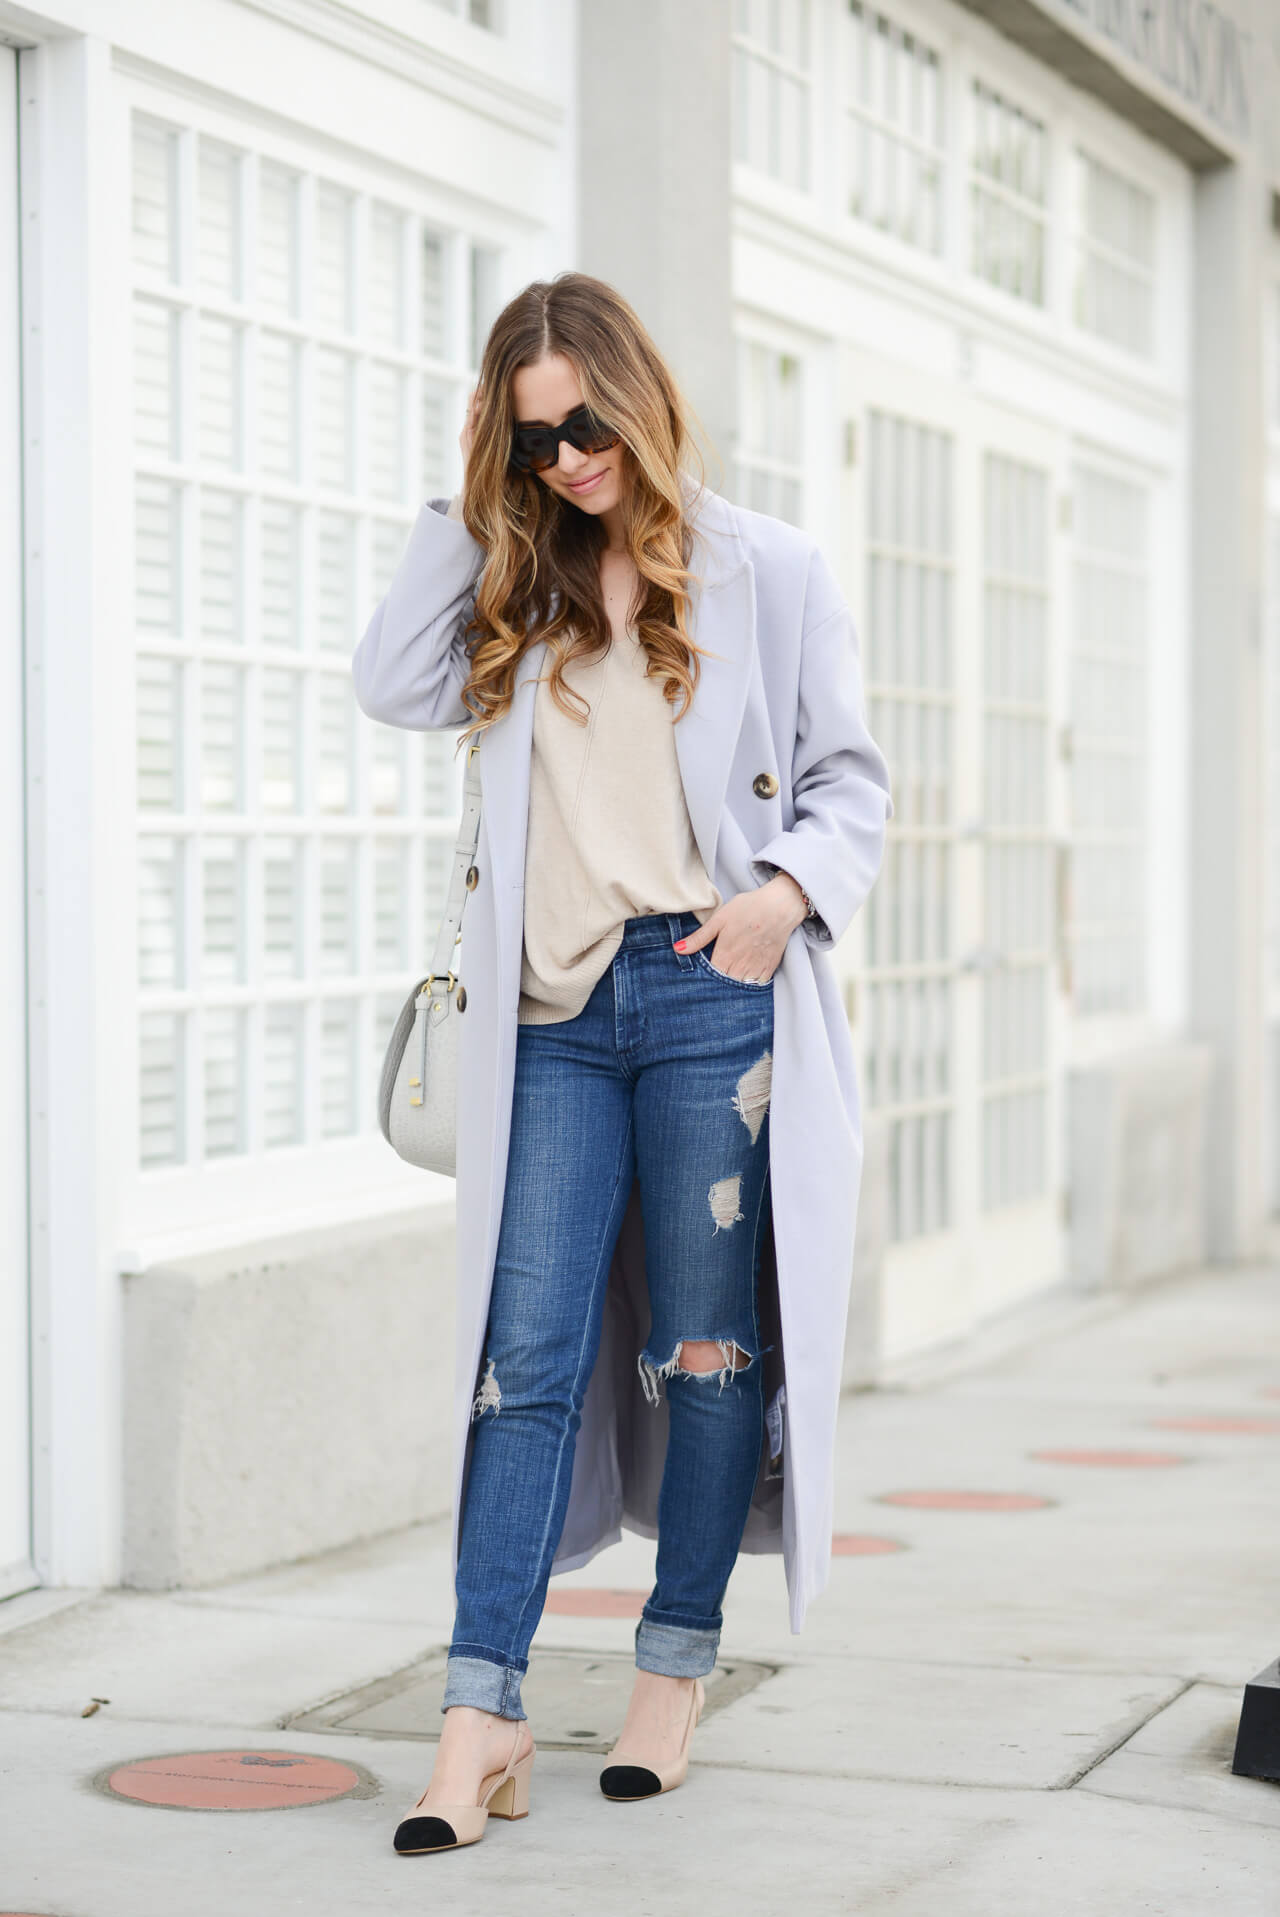 lavender coat with tan sweater and distressed jeans